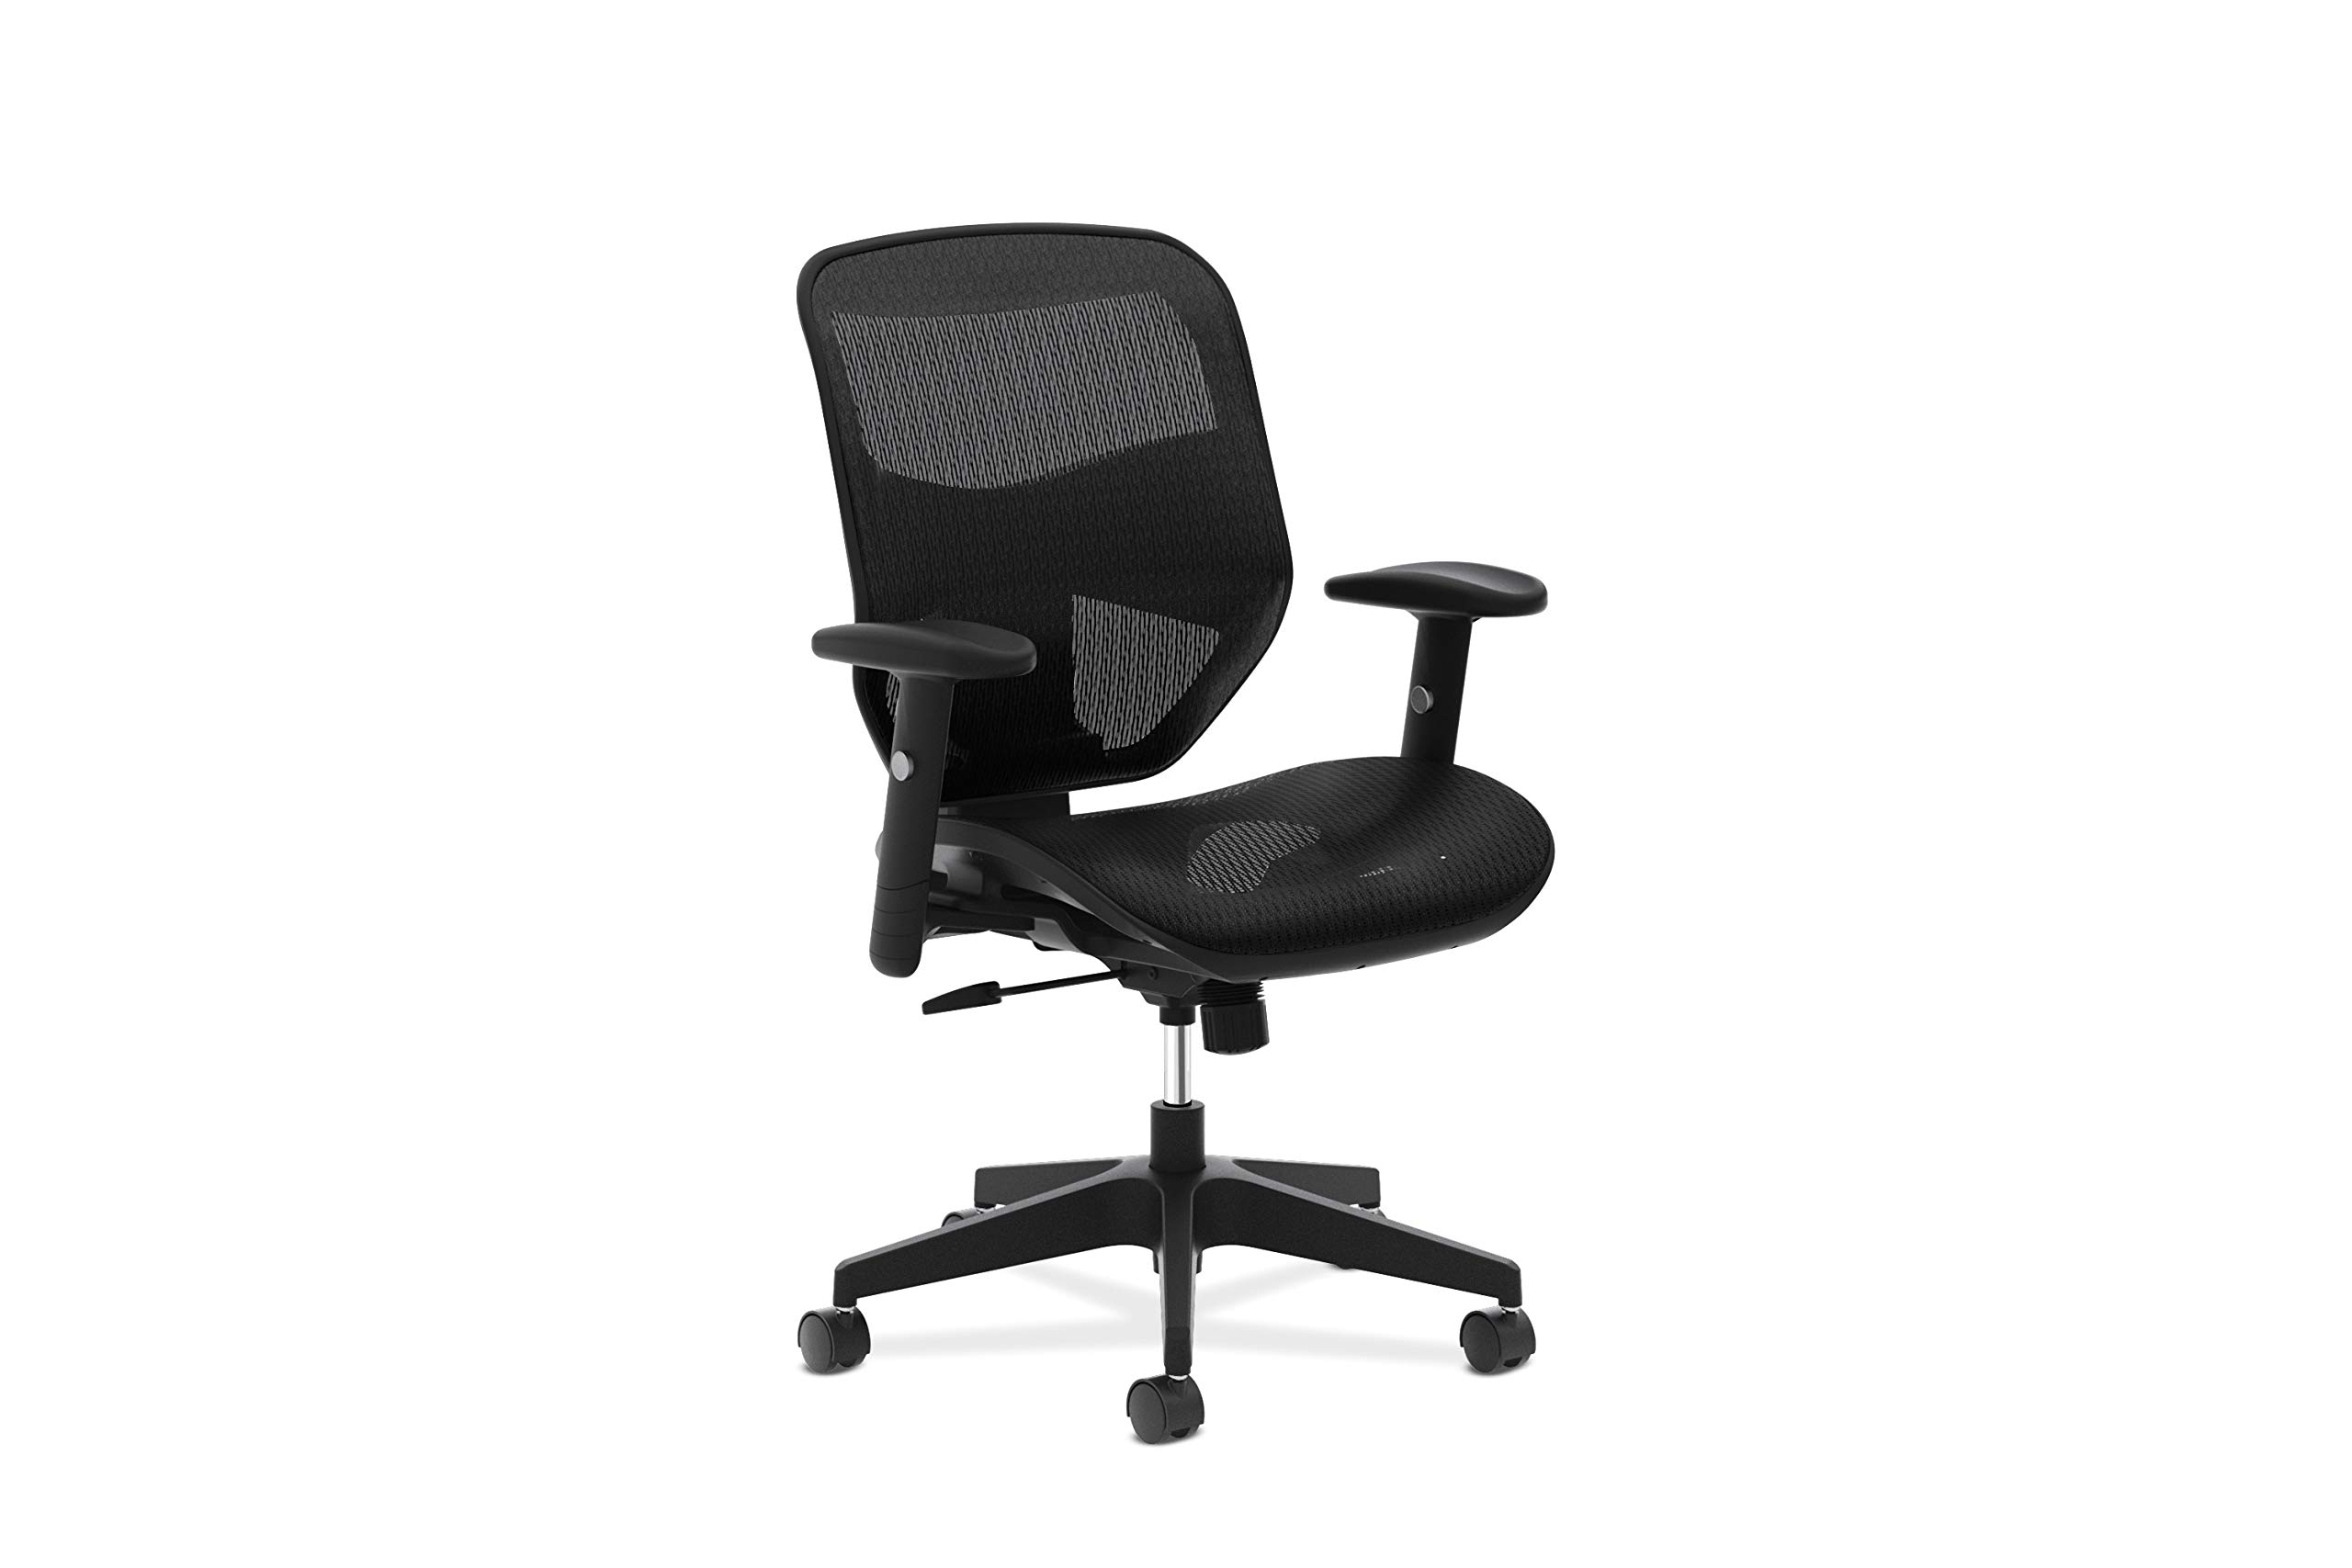 HON Prominent High Back Task Chair - Mesh Back and Seat Office Chair for Computer Desk, Black (HVL534) by HON